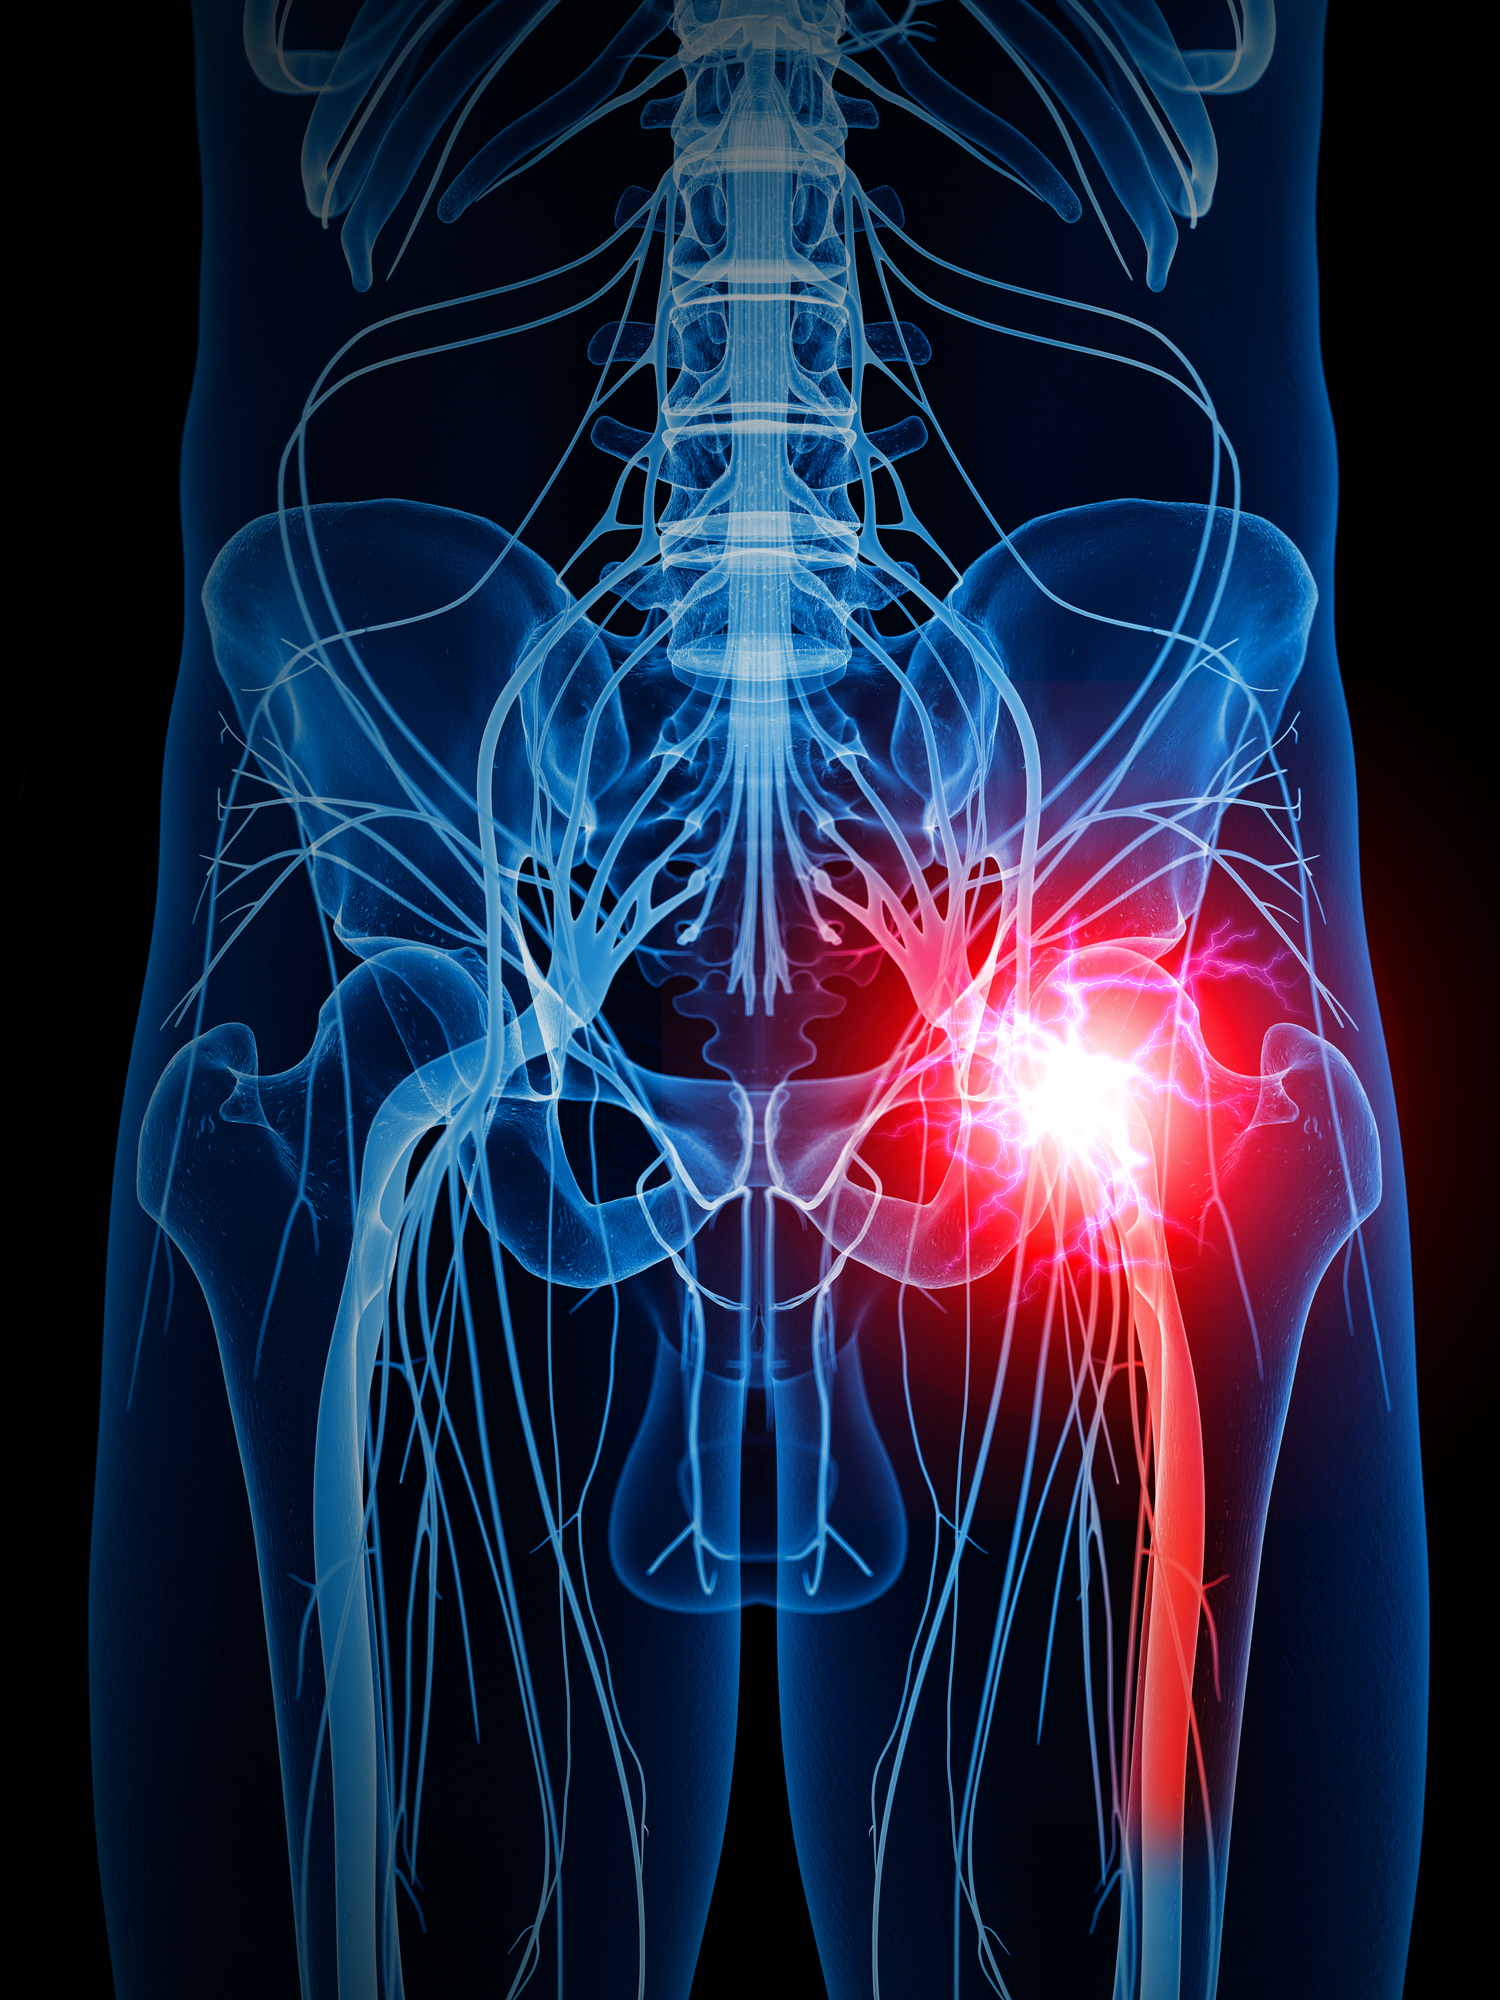 Taming the pain of sciatica: For most people, time heals and less is ...